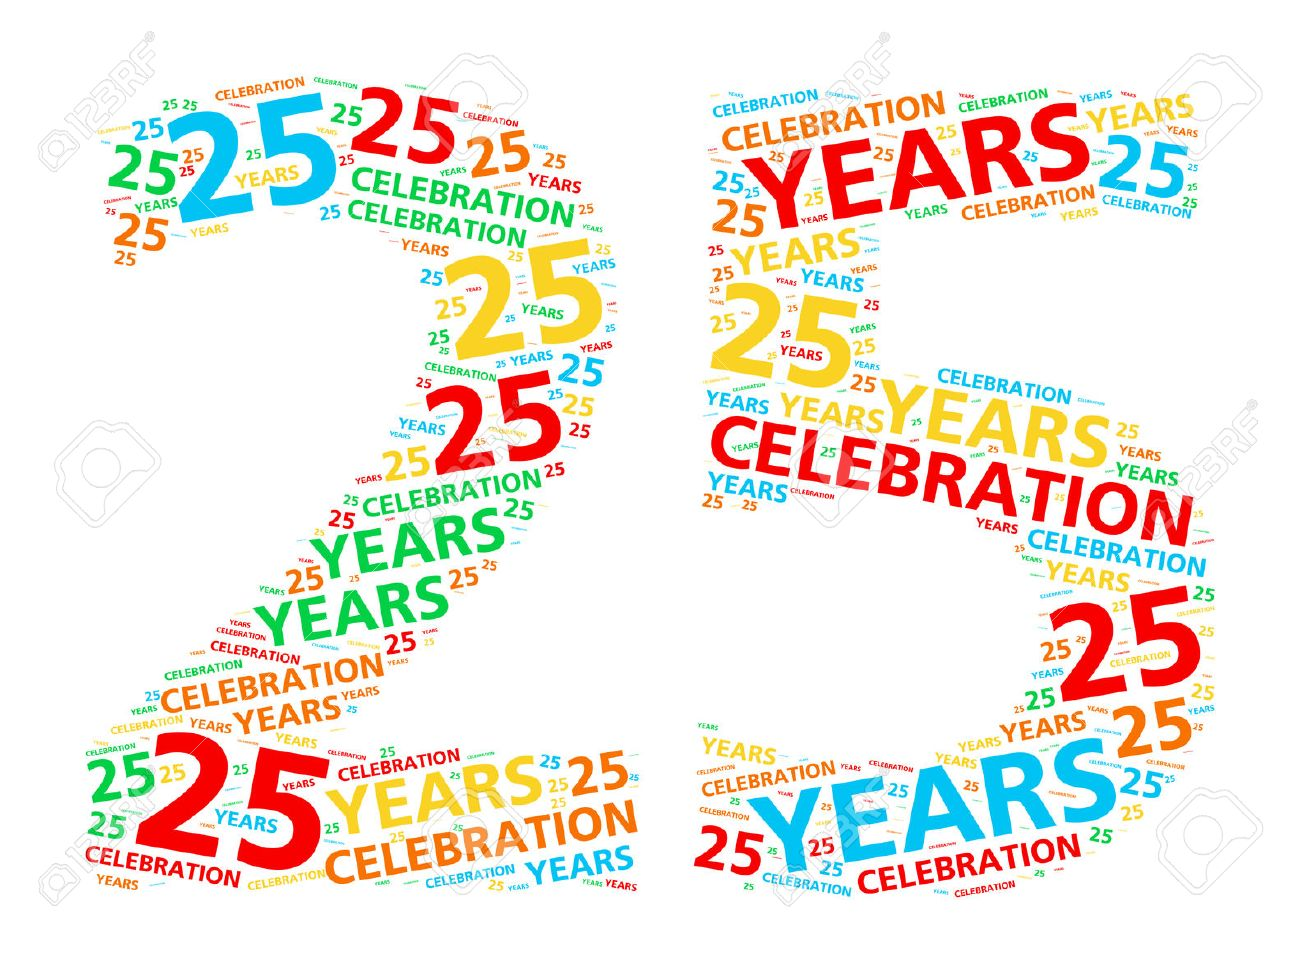 Colorful Word Cloud For Celebrating A 25 Year Birthday Or Anniversary Stock  Photo, Picture And Royalty Free Image. Image 46804276.